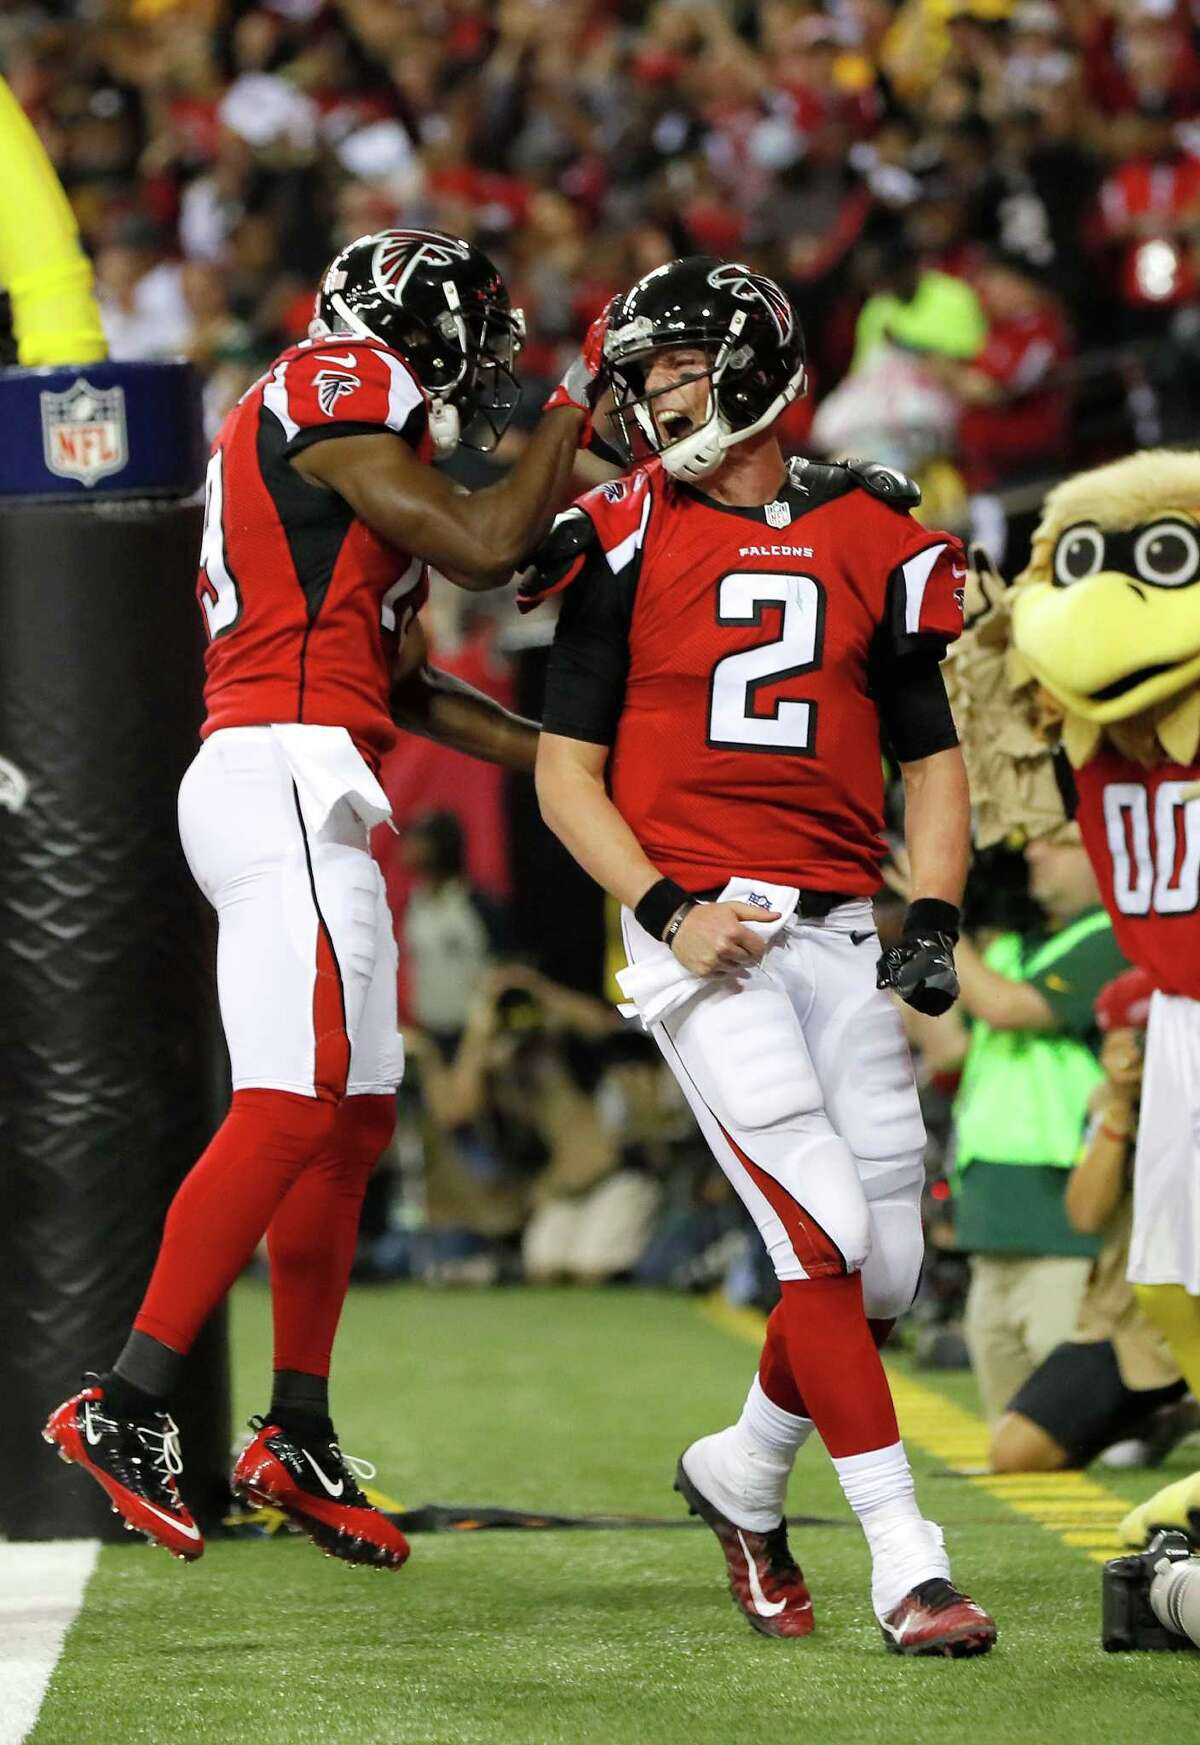 ATLANTA, GA - JANUARY 22: Matt Ryan #2 of the Atlanta Falcons celebrates with Aldrick Robinson #19 after a 14 yard touchdown run in the second quarter against the Green Bay Packers in the NFC Championship Game at the Georgia Dome on January 22, 2017 in Atlanta, Georgia. (Photo by Kevin C. Cox/Getty Images)